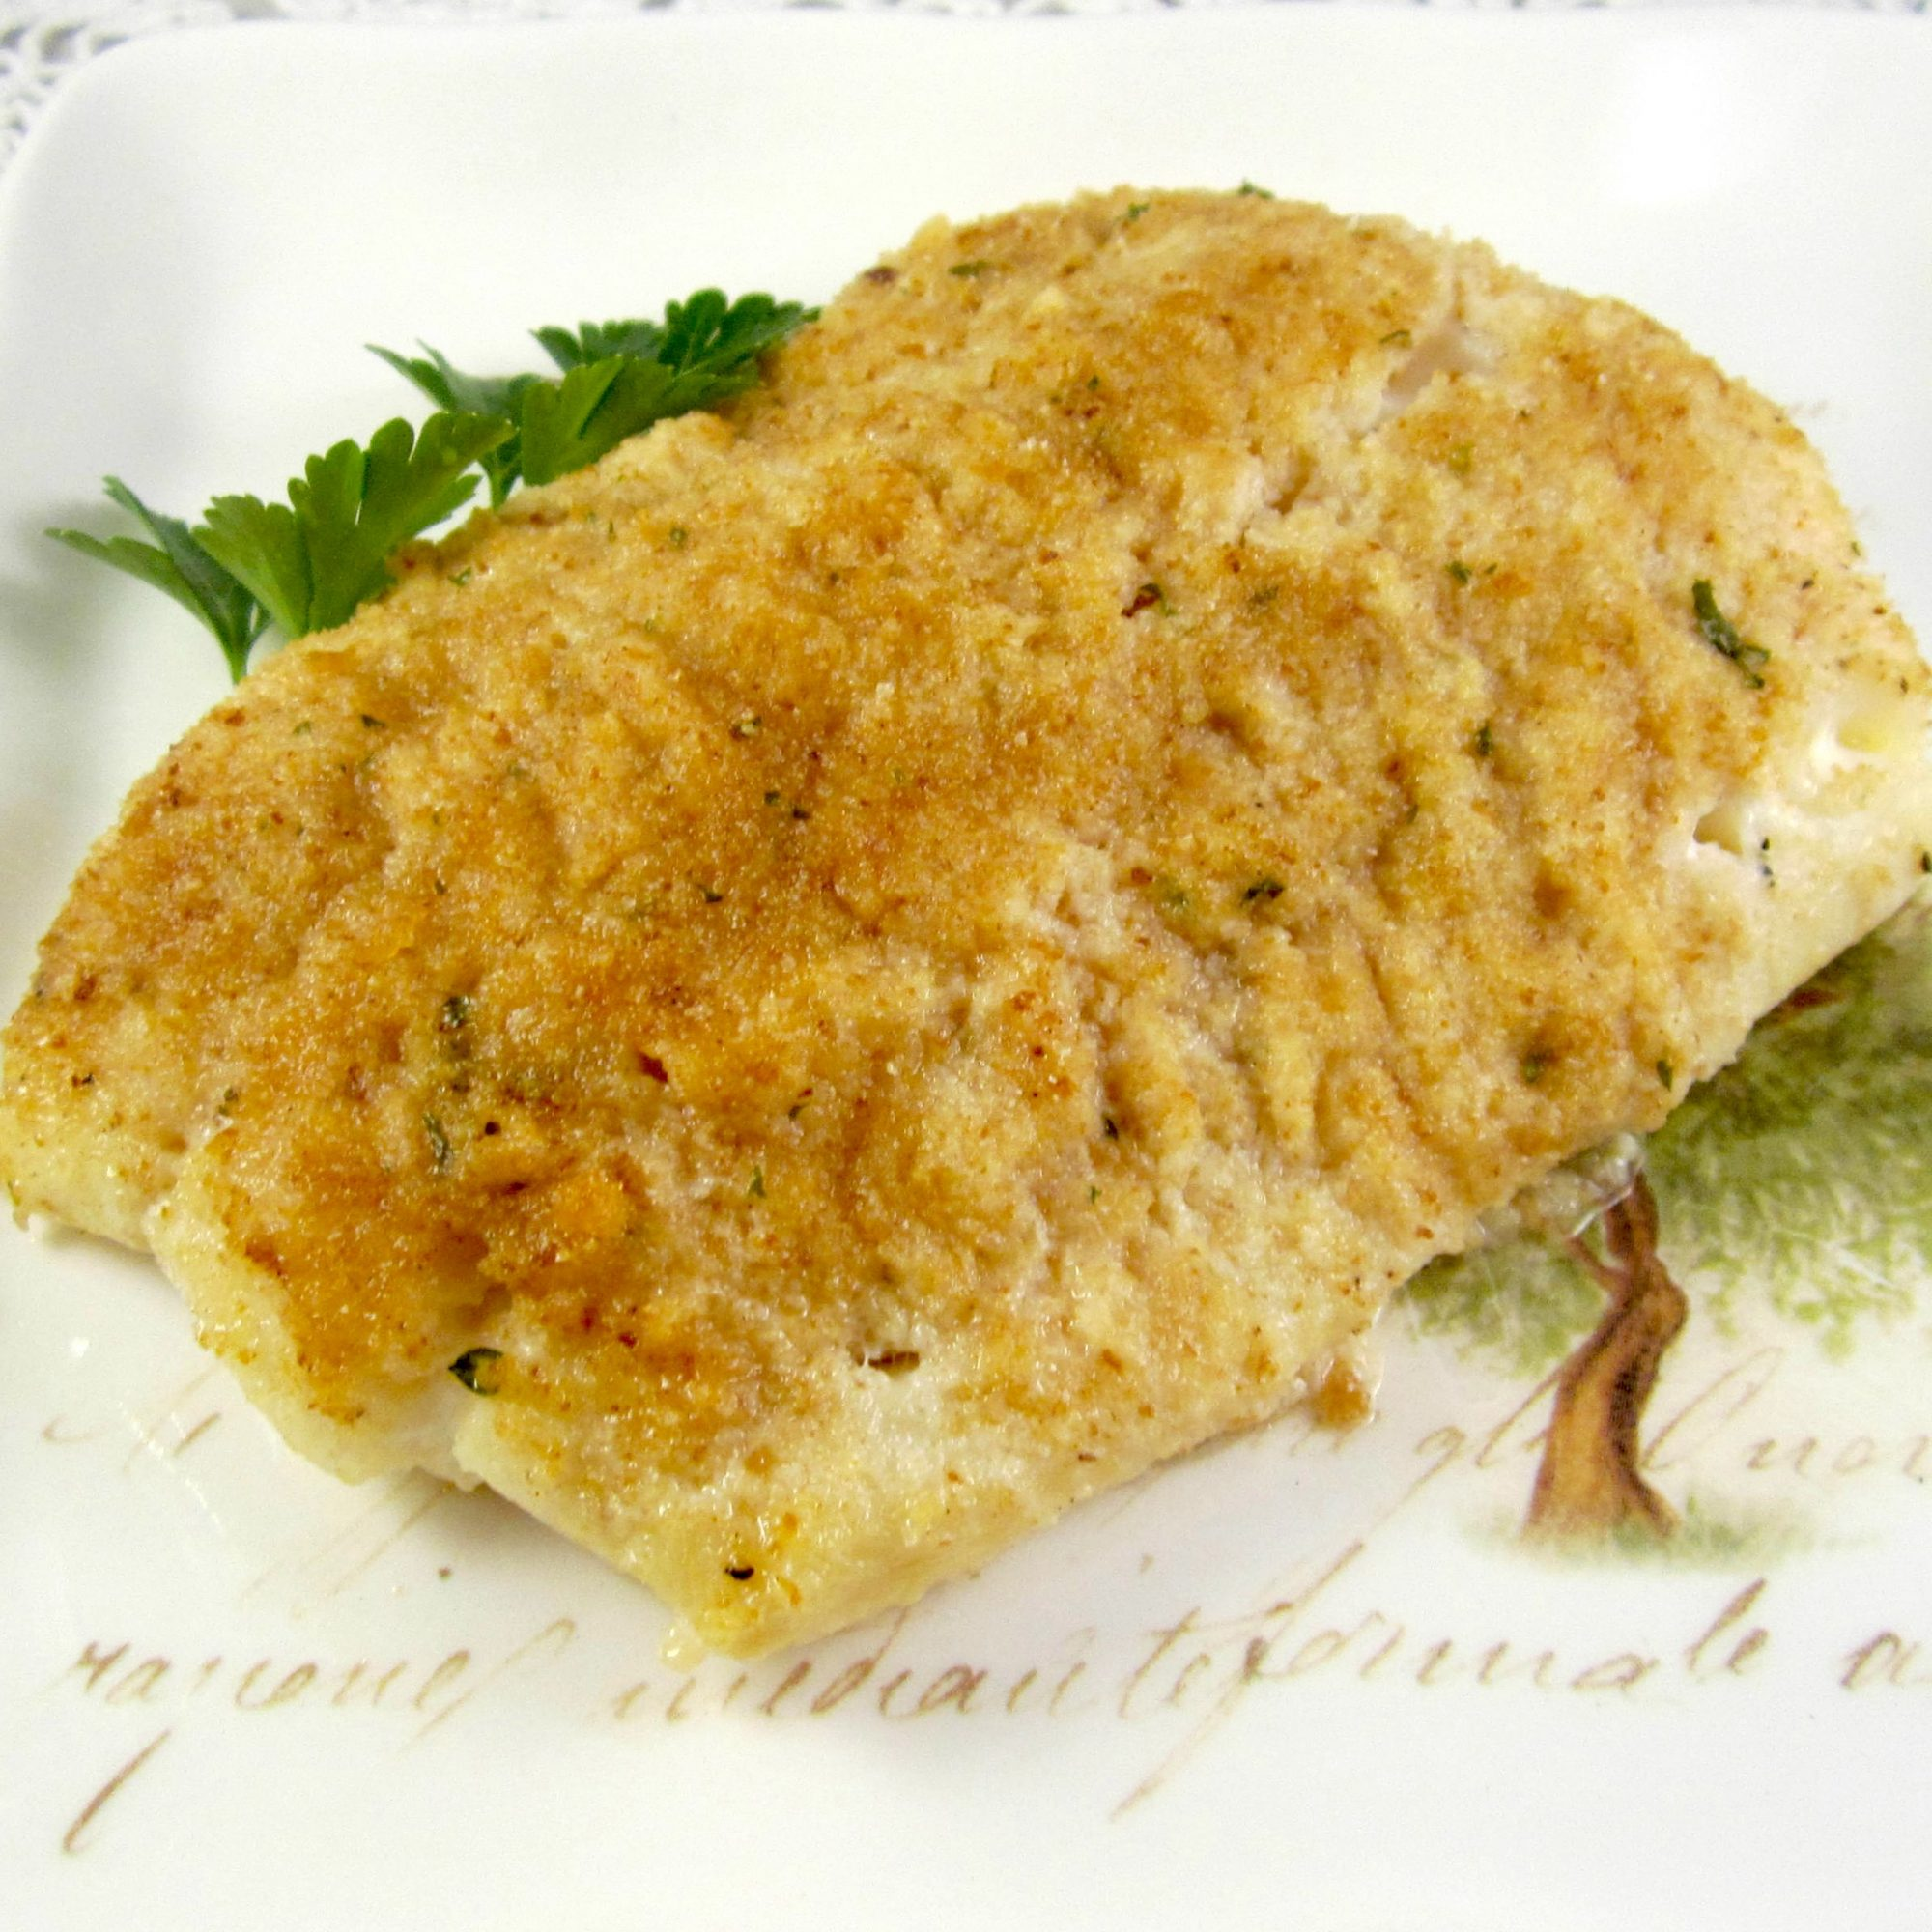 Easy, Excellent Baked Flounder